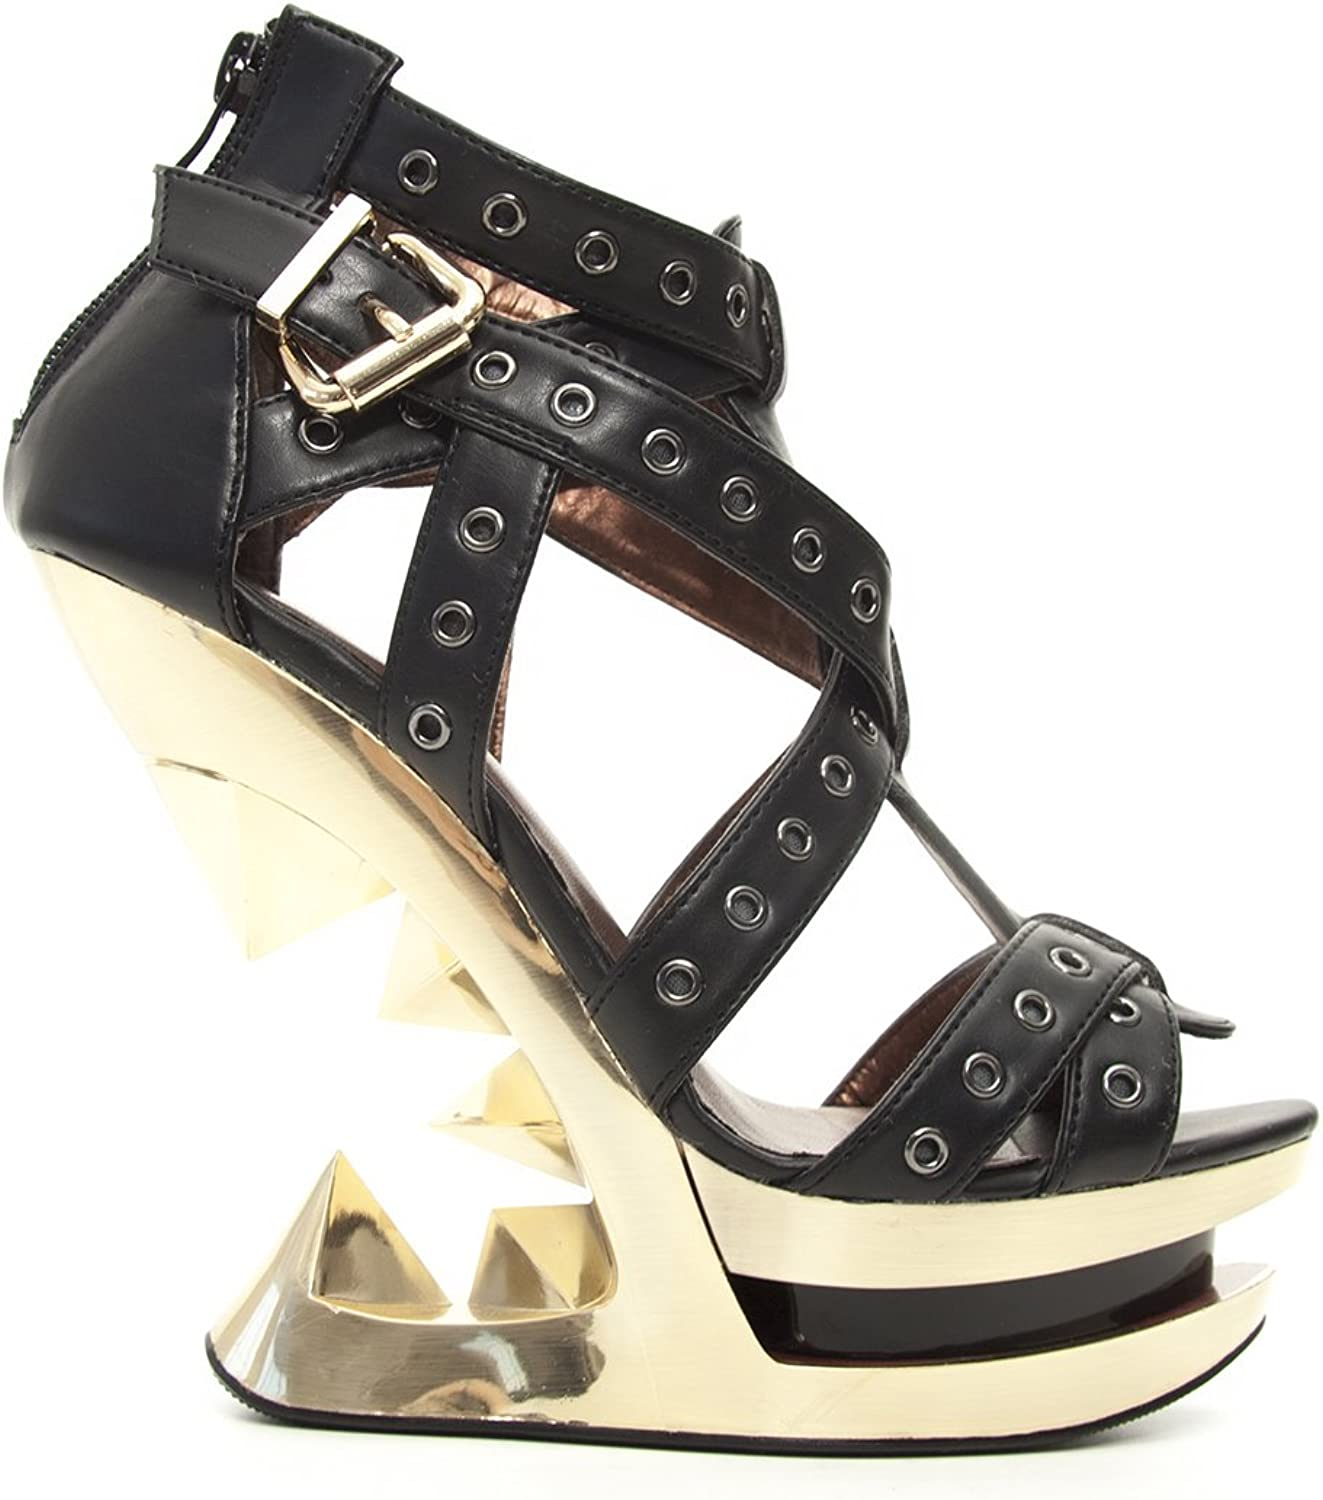 Hades shoes H-Taunt gold Wedge Heel 9 Black